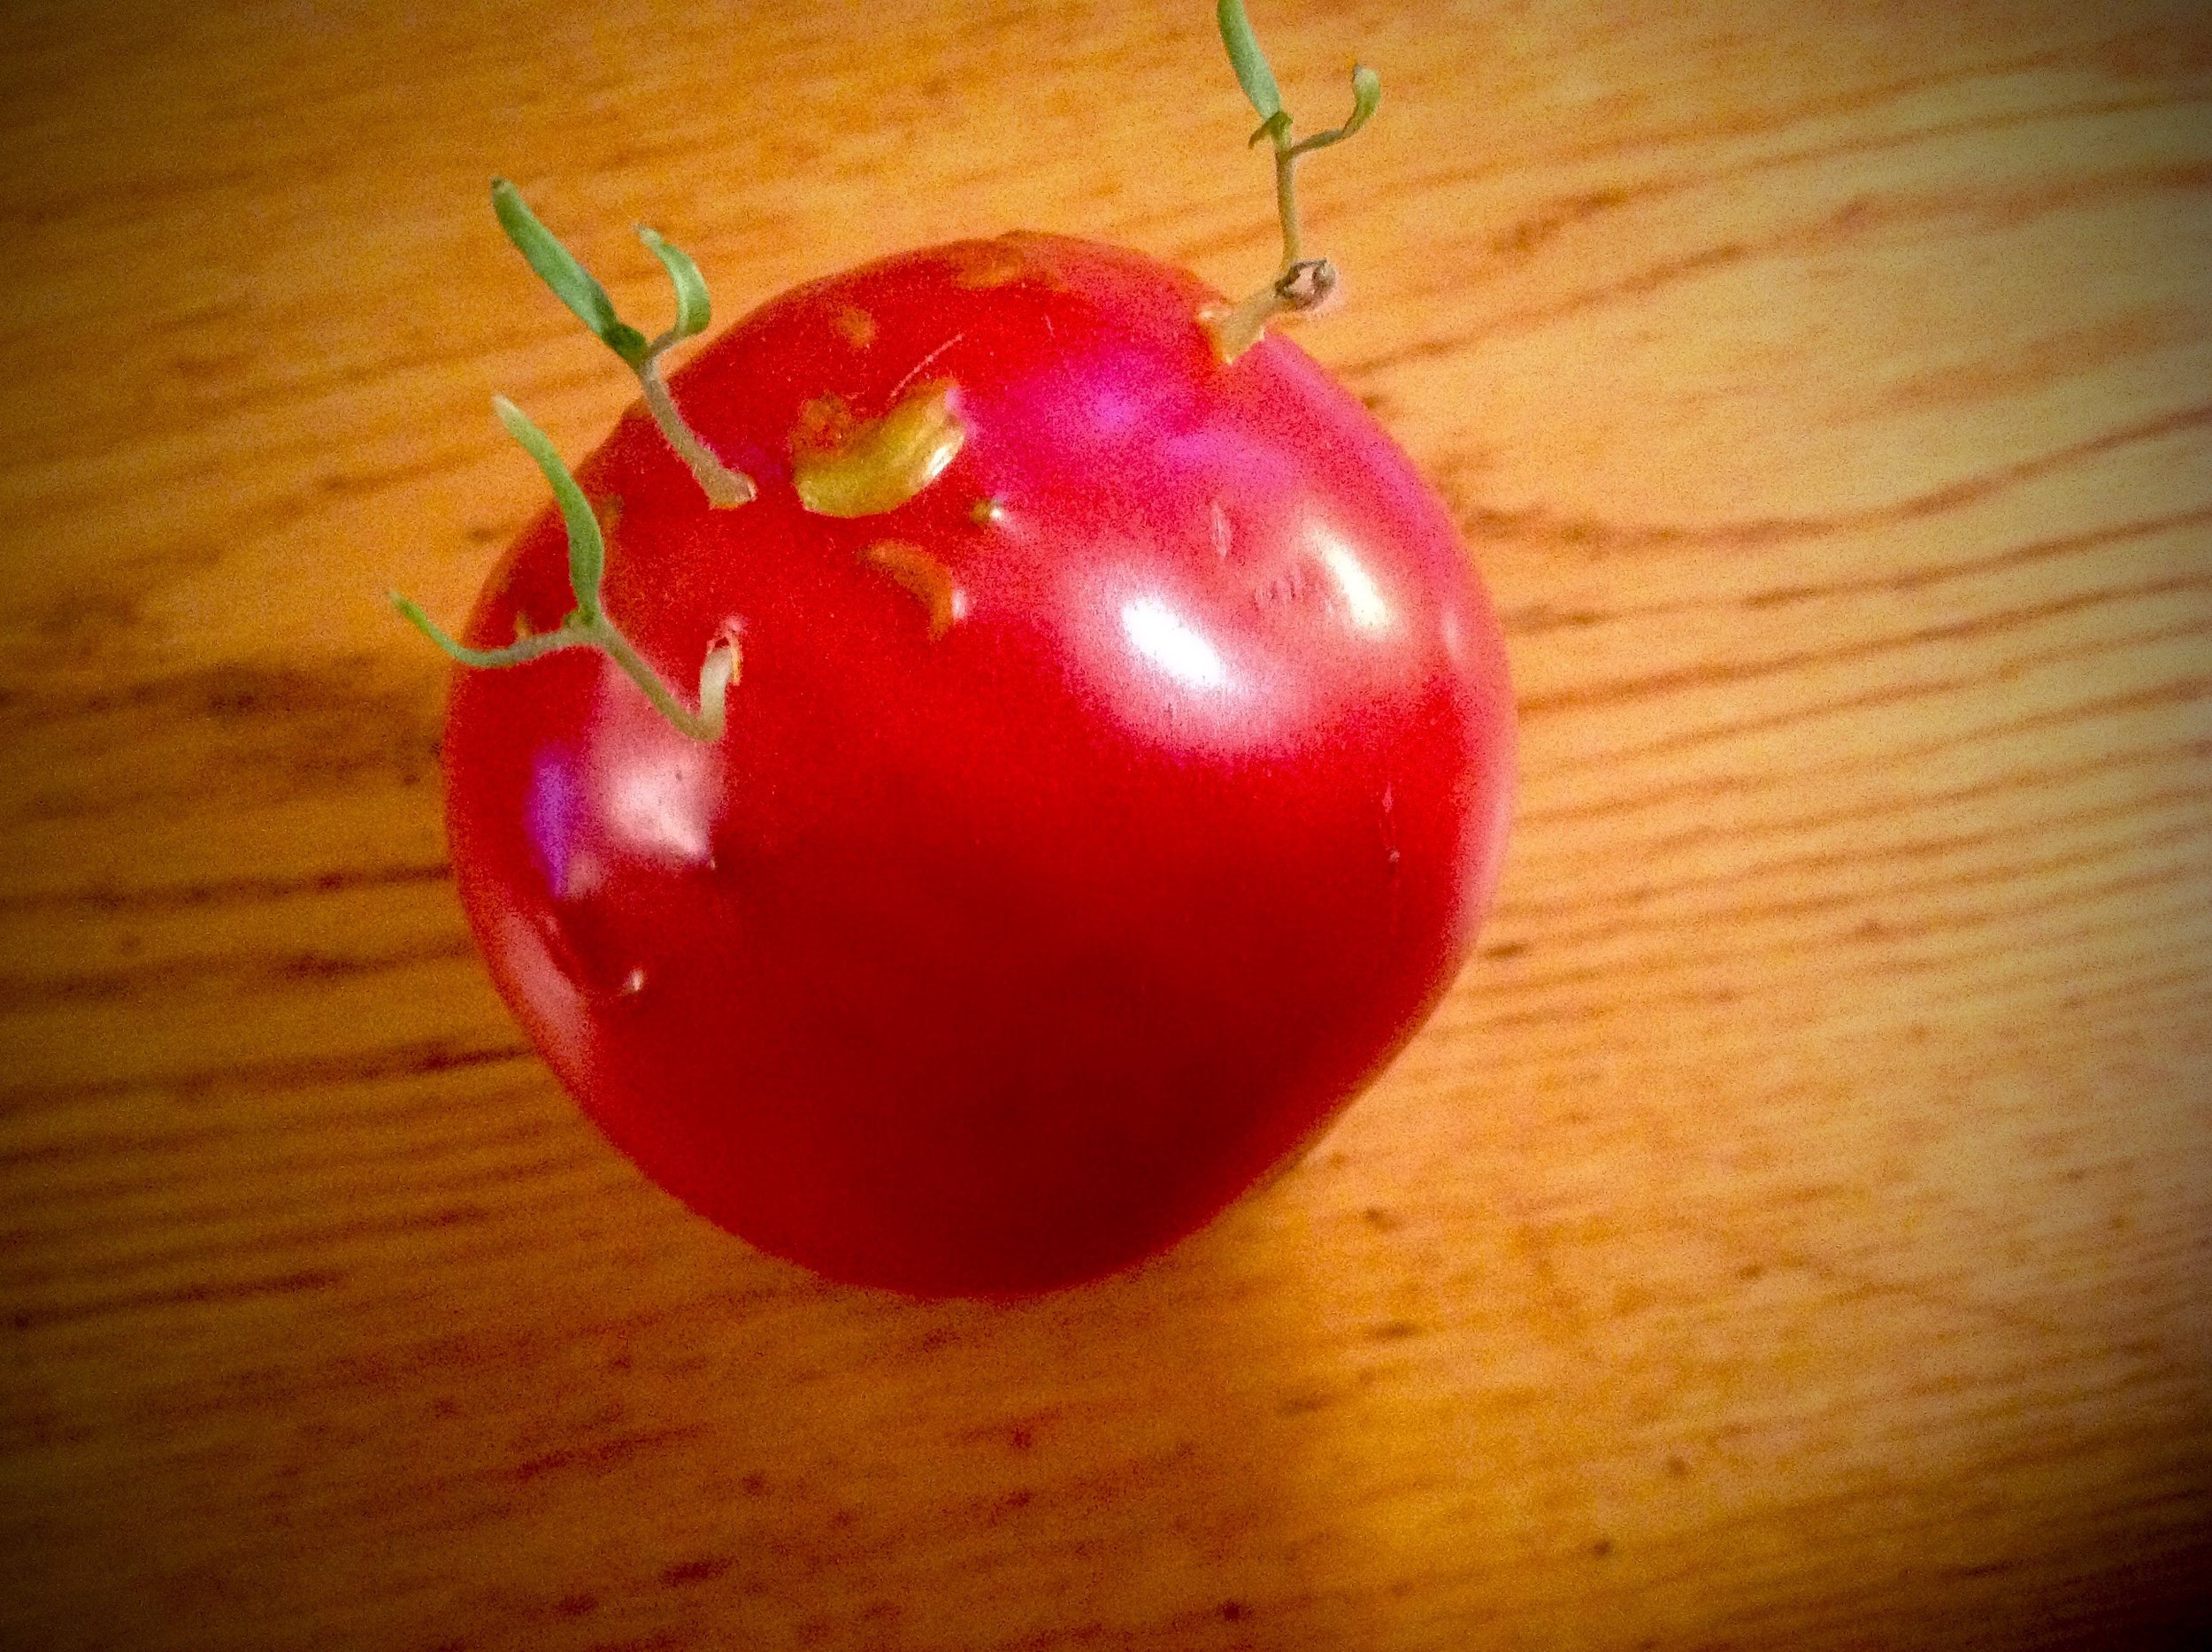 David's sprouting tomato.